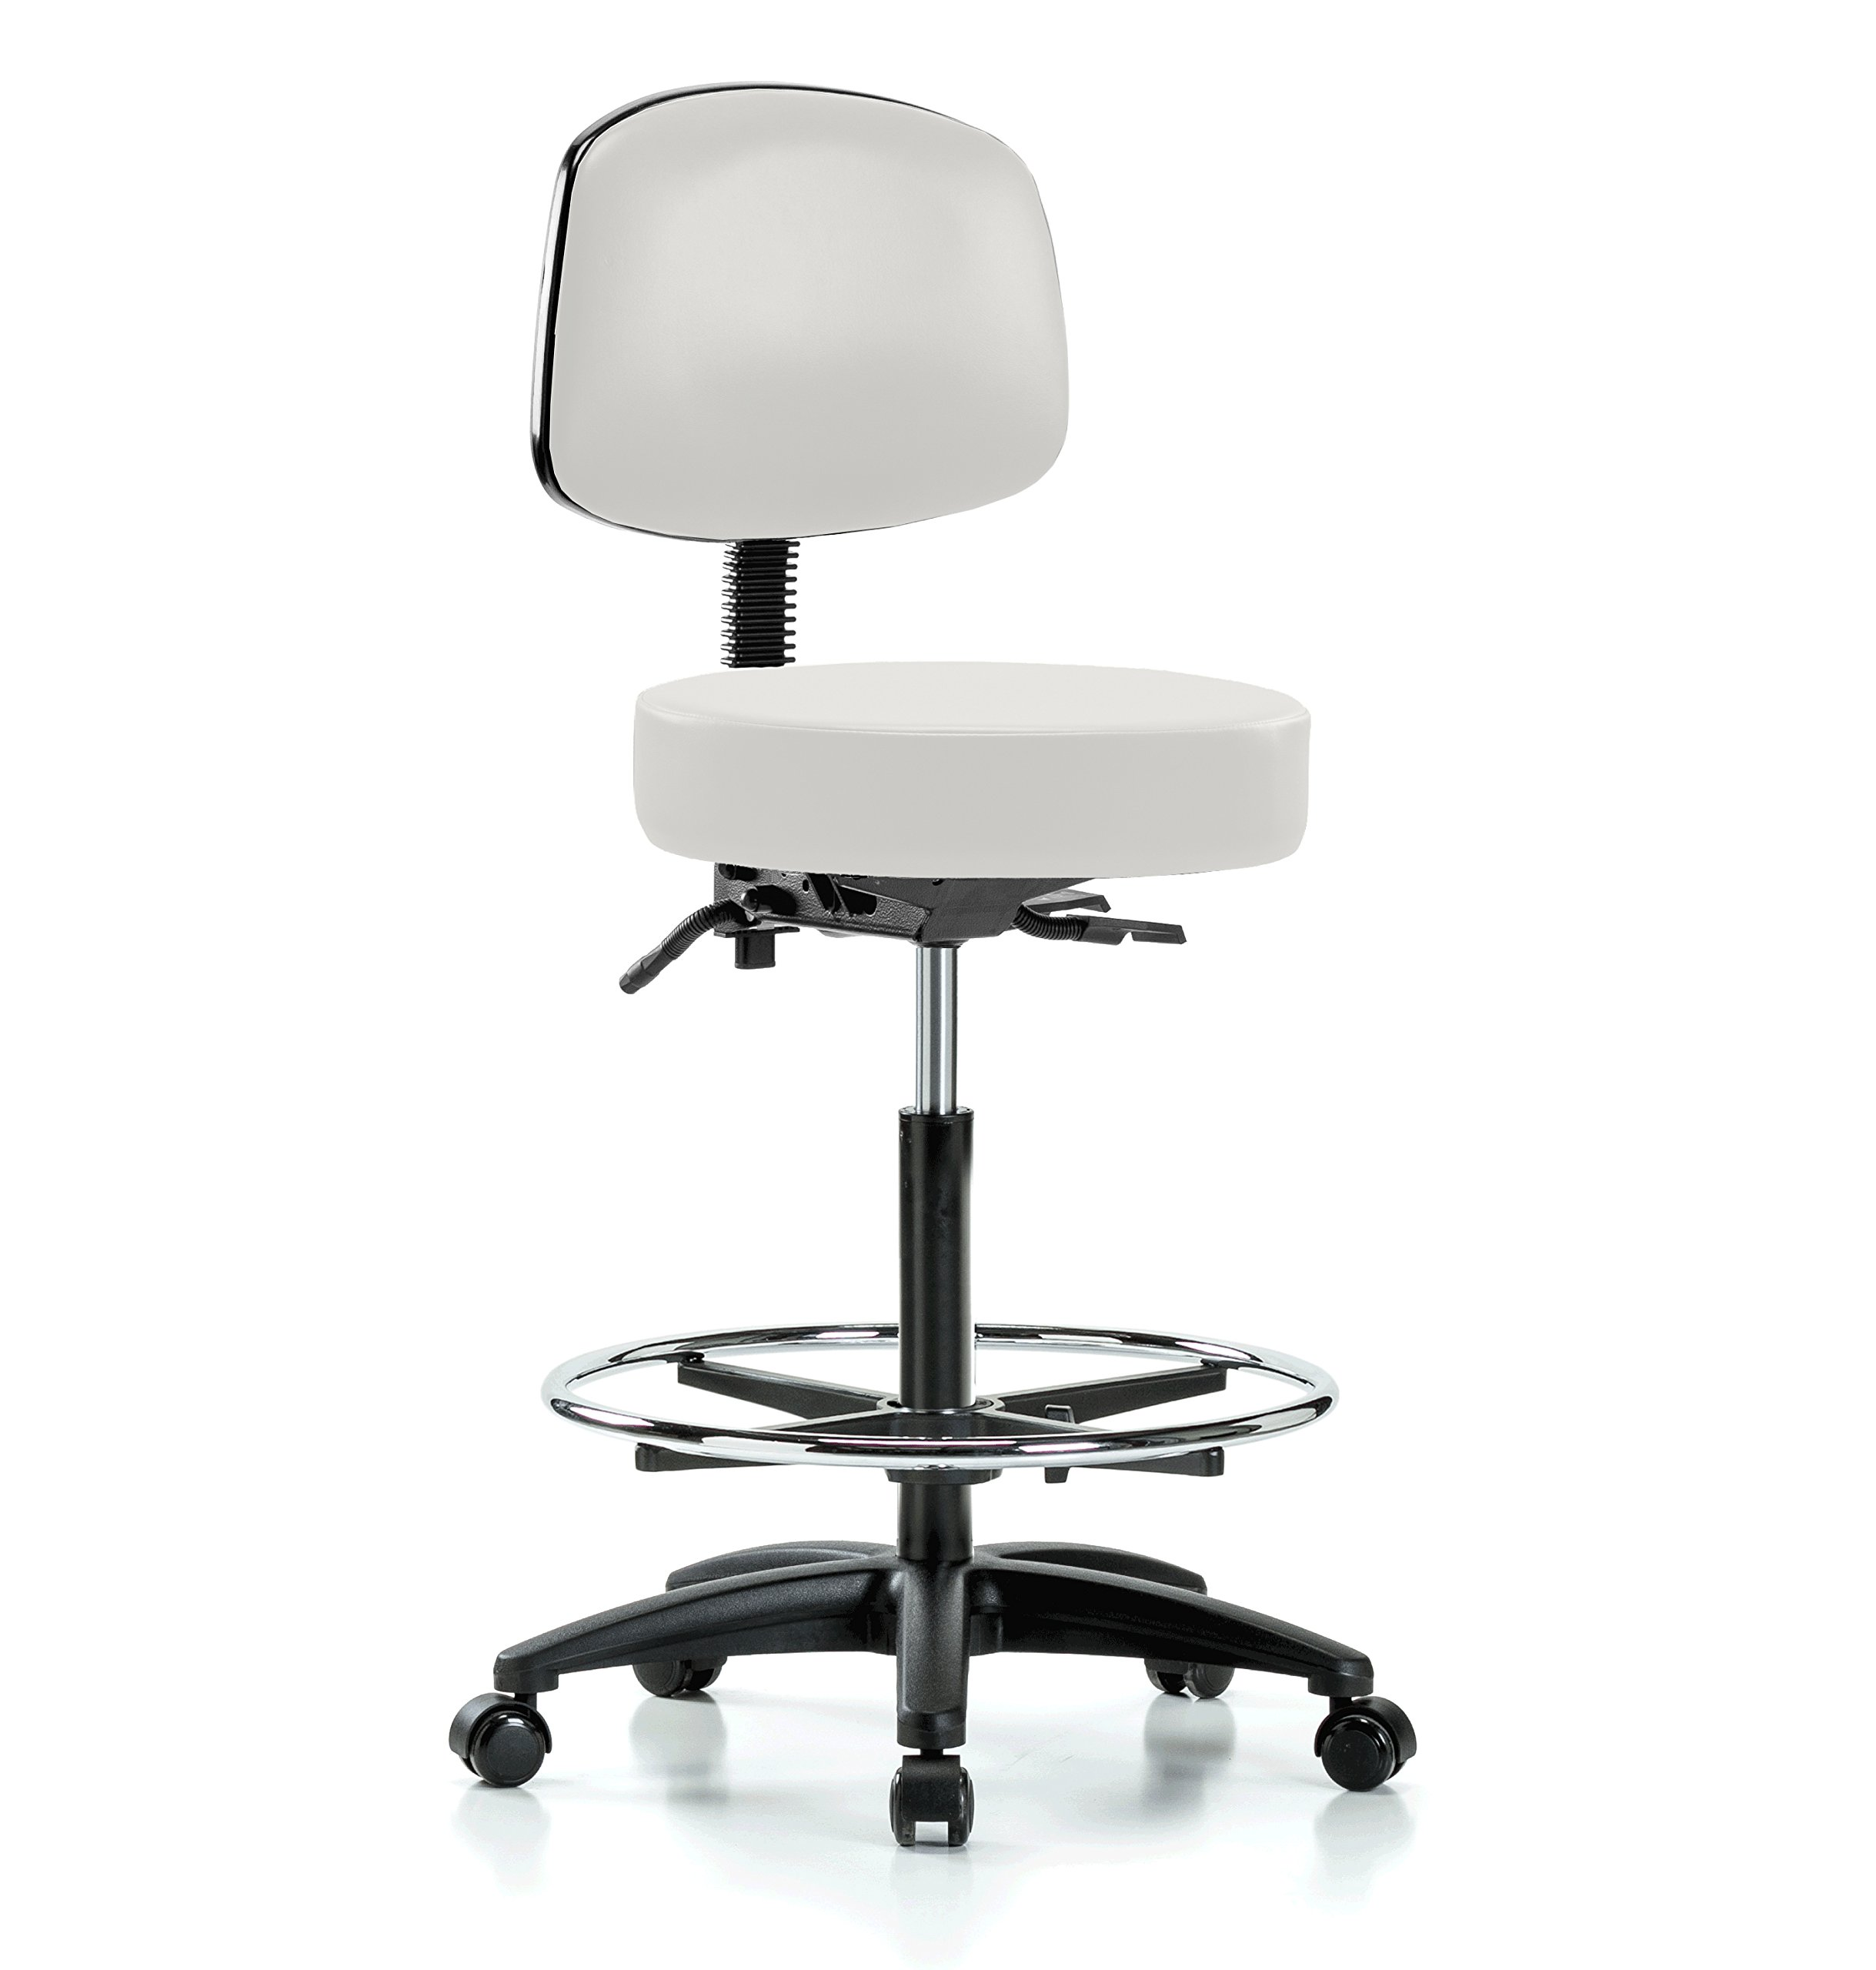 Perch Walter Rolling Doctor Stool with Footring and Adjustable Back Support for Medical Dental Salon Spa Office or Home 25'' - 35'' (Hard Floor Casters/Adobe White Vinyl)